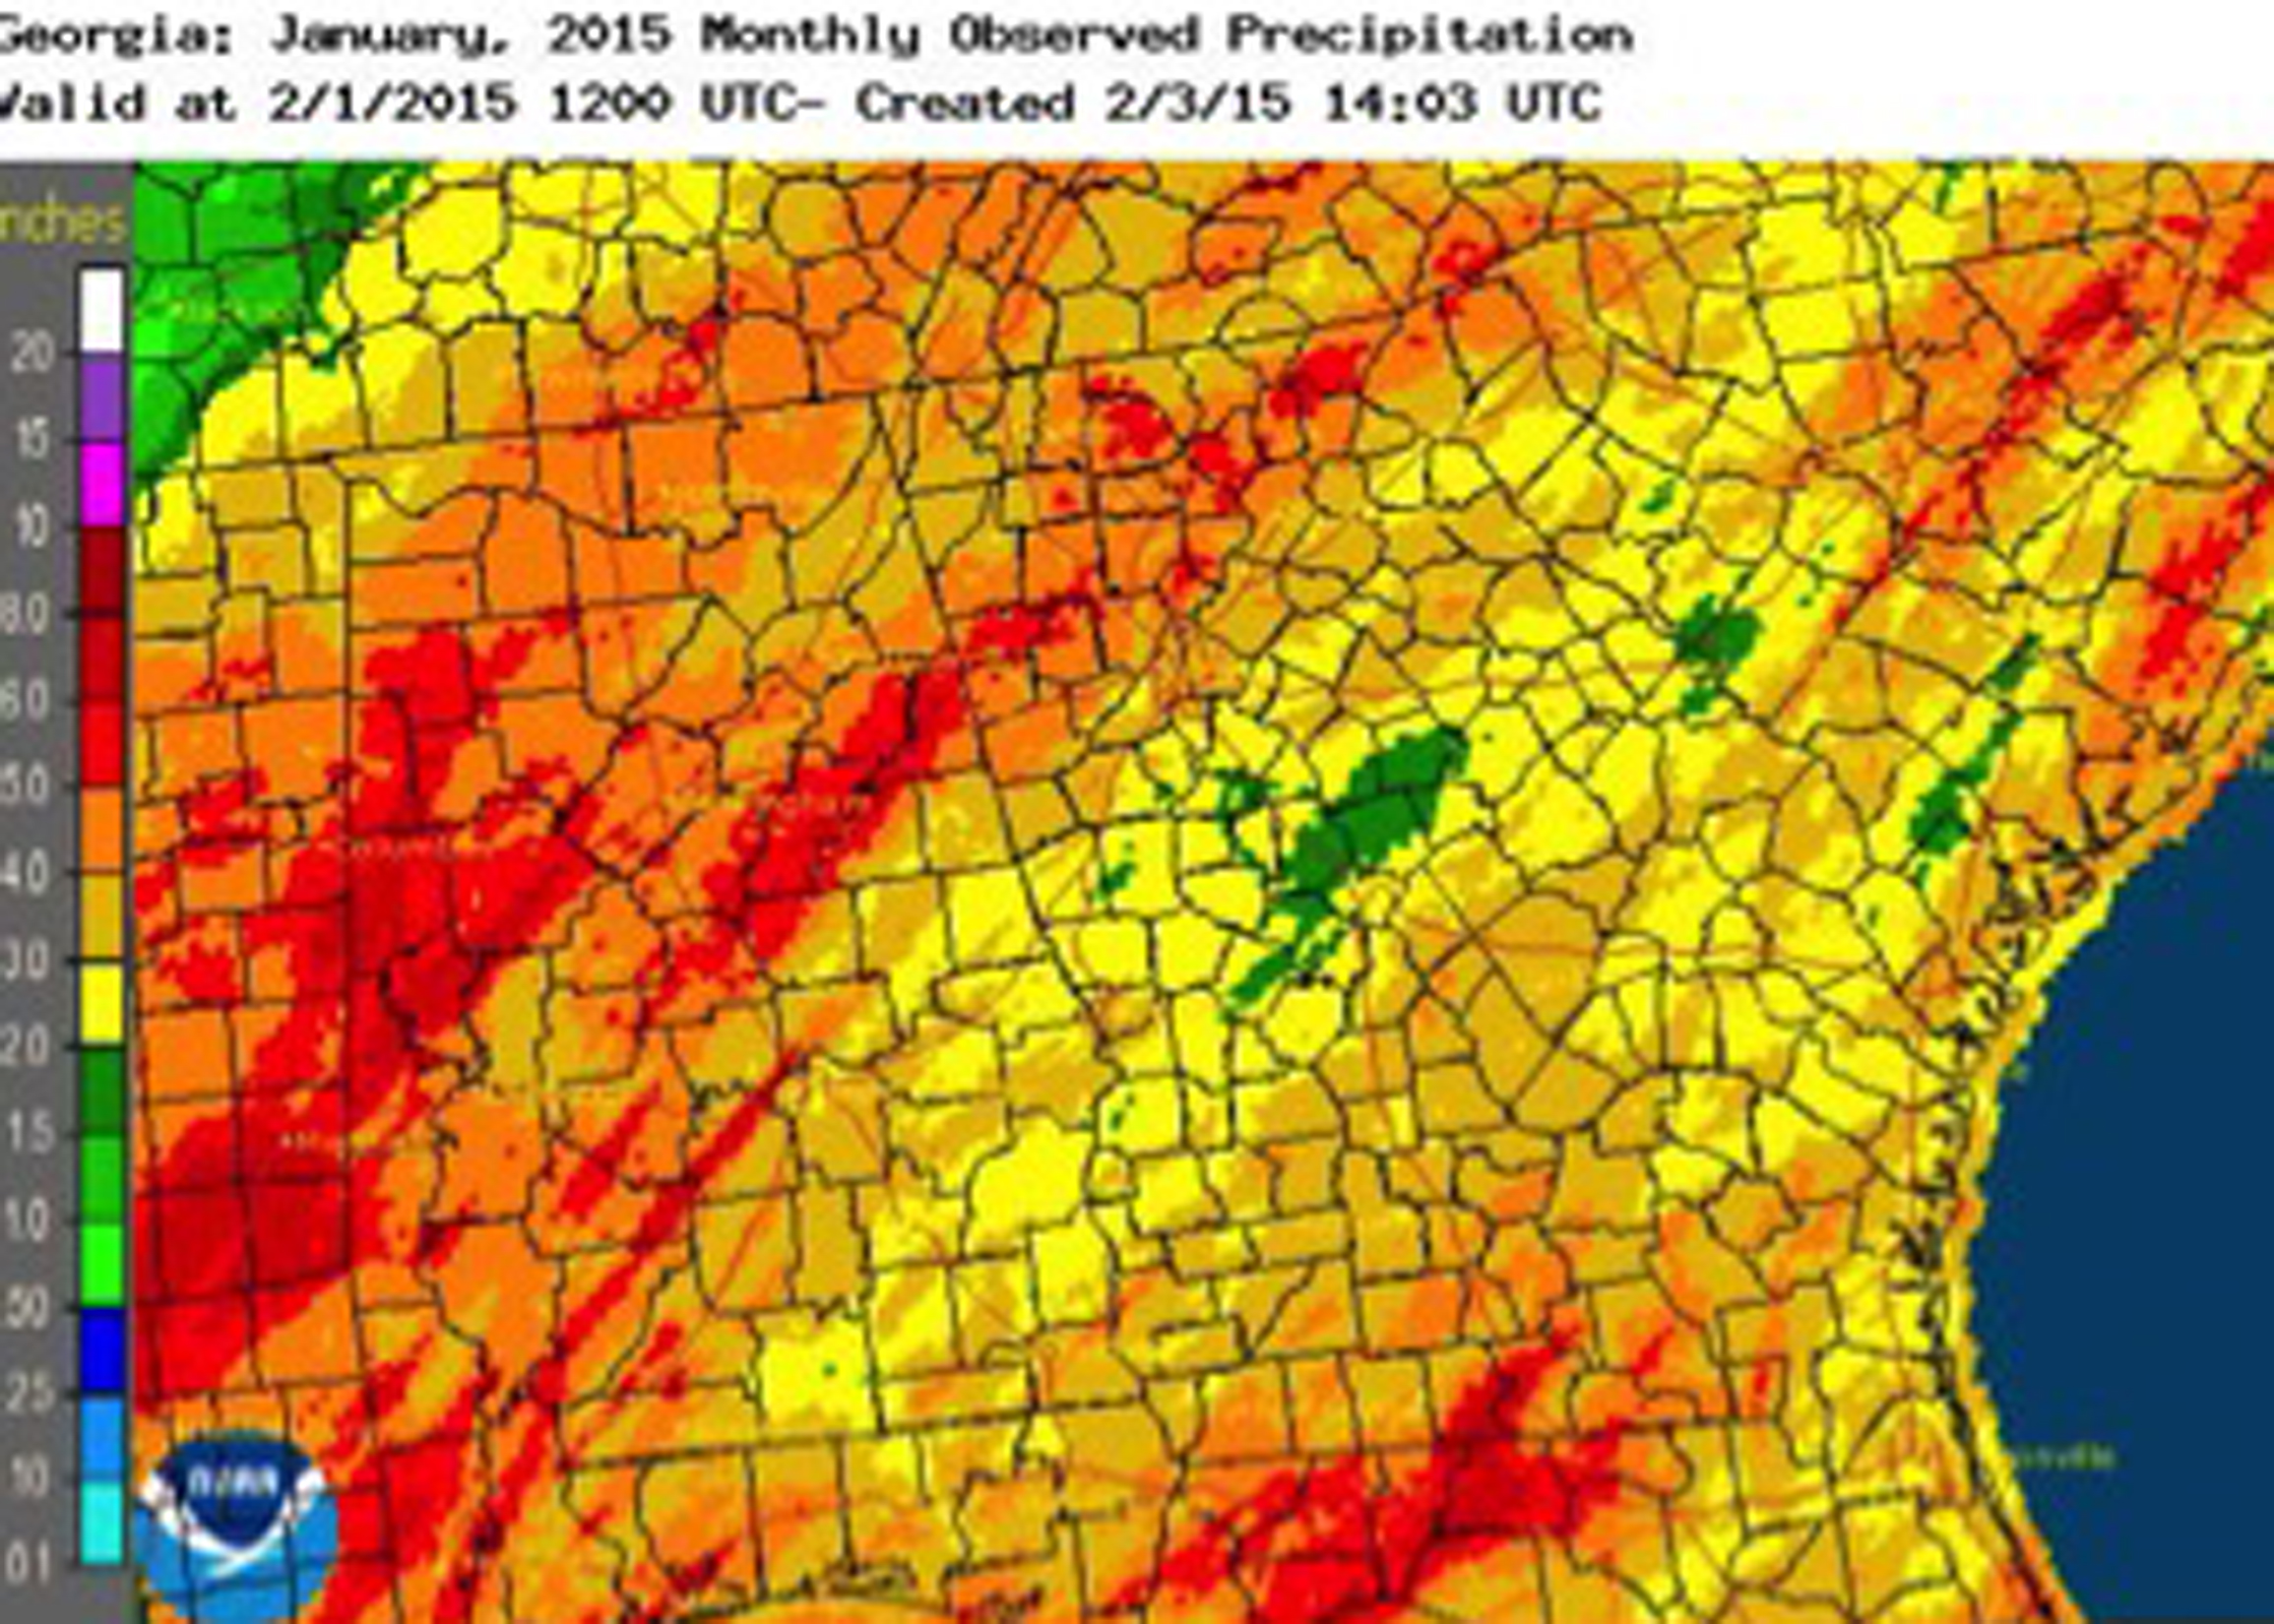 While the weather was drier than normal in January 2015, cooler temperatures kept the lack of rain from impacting soil moisture levels.